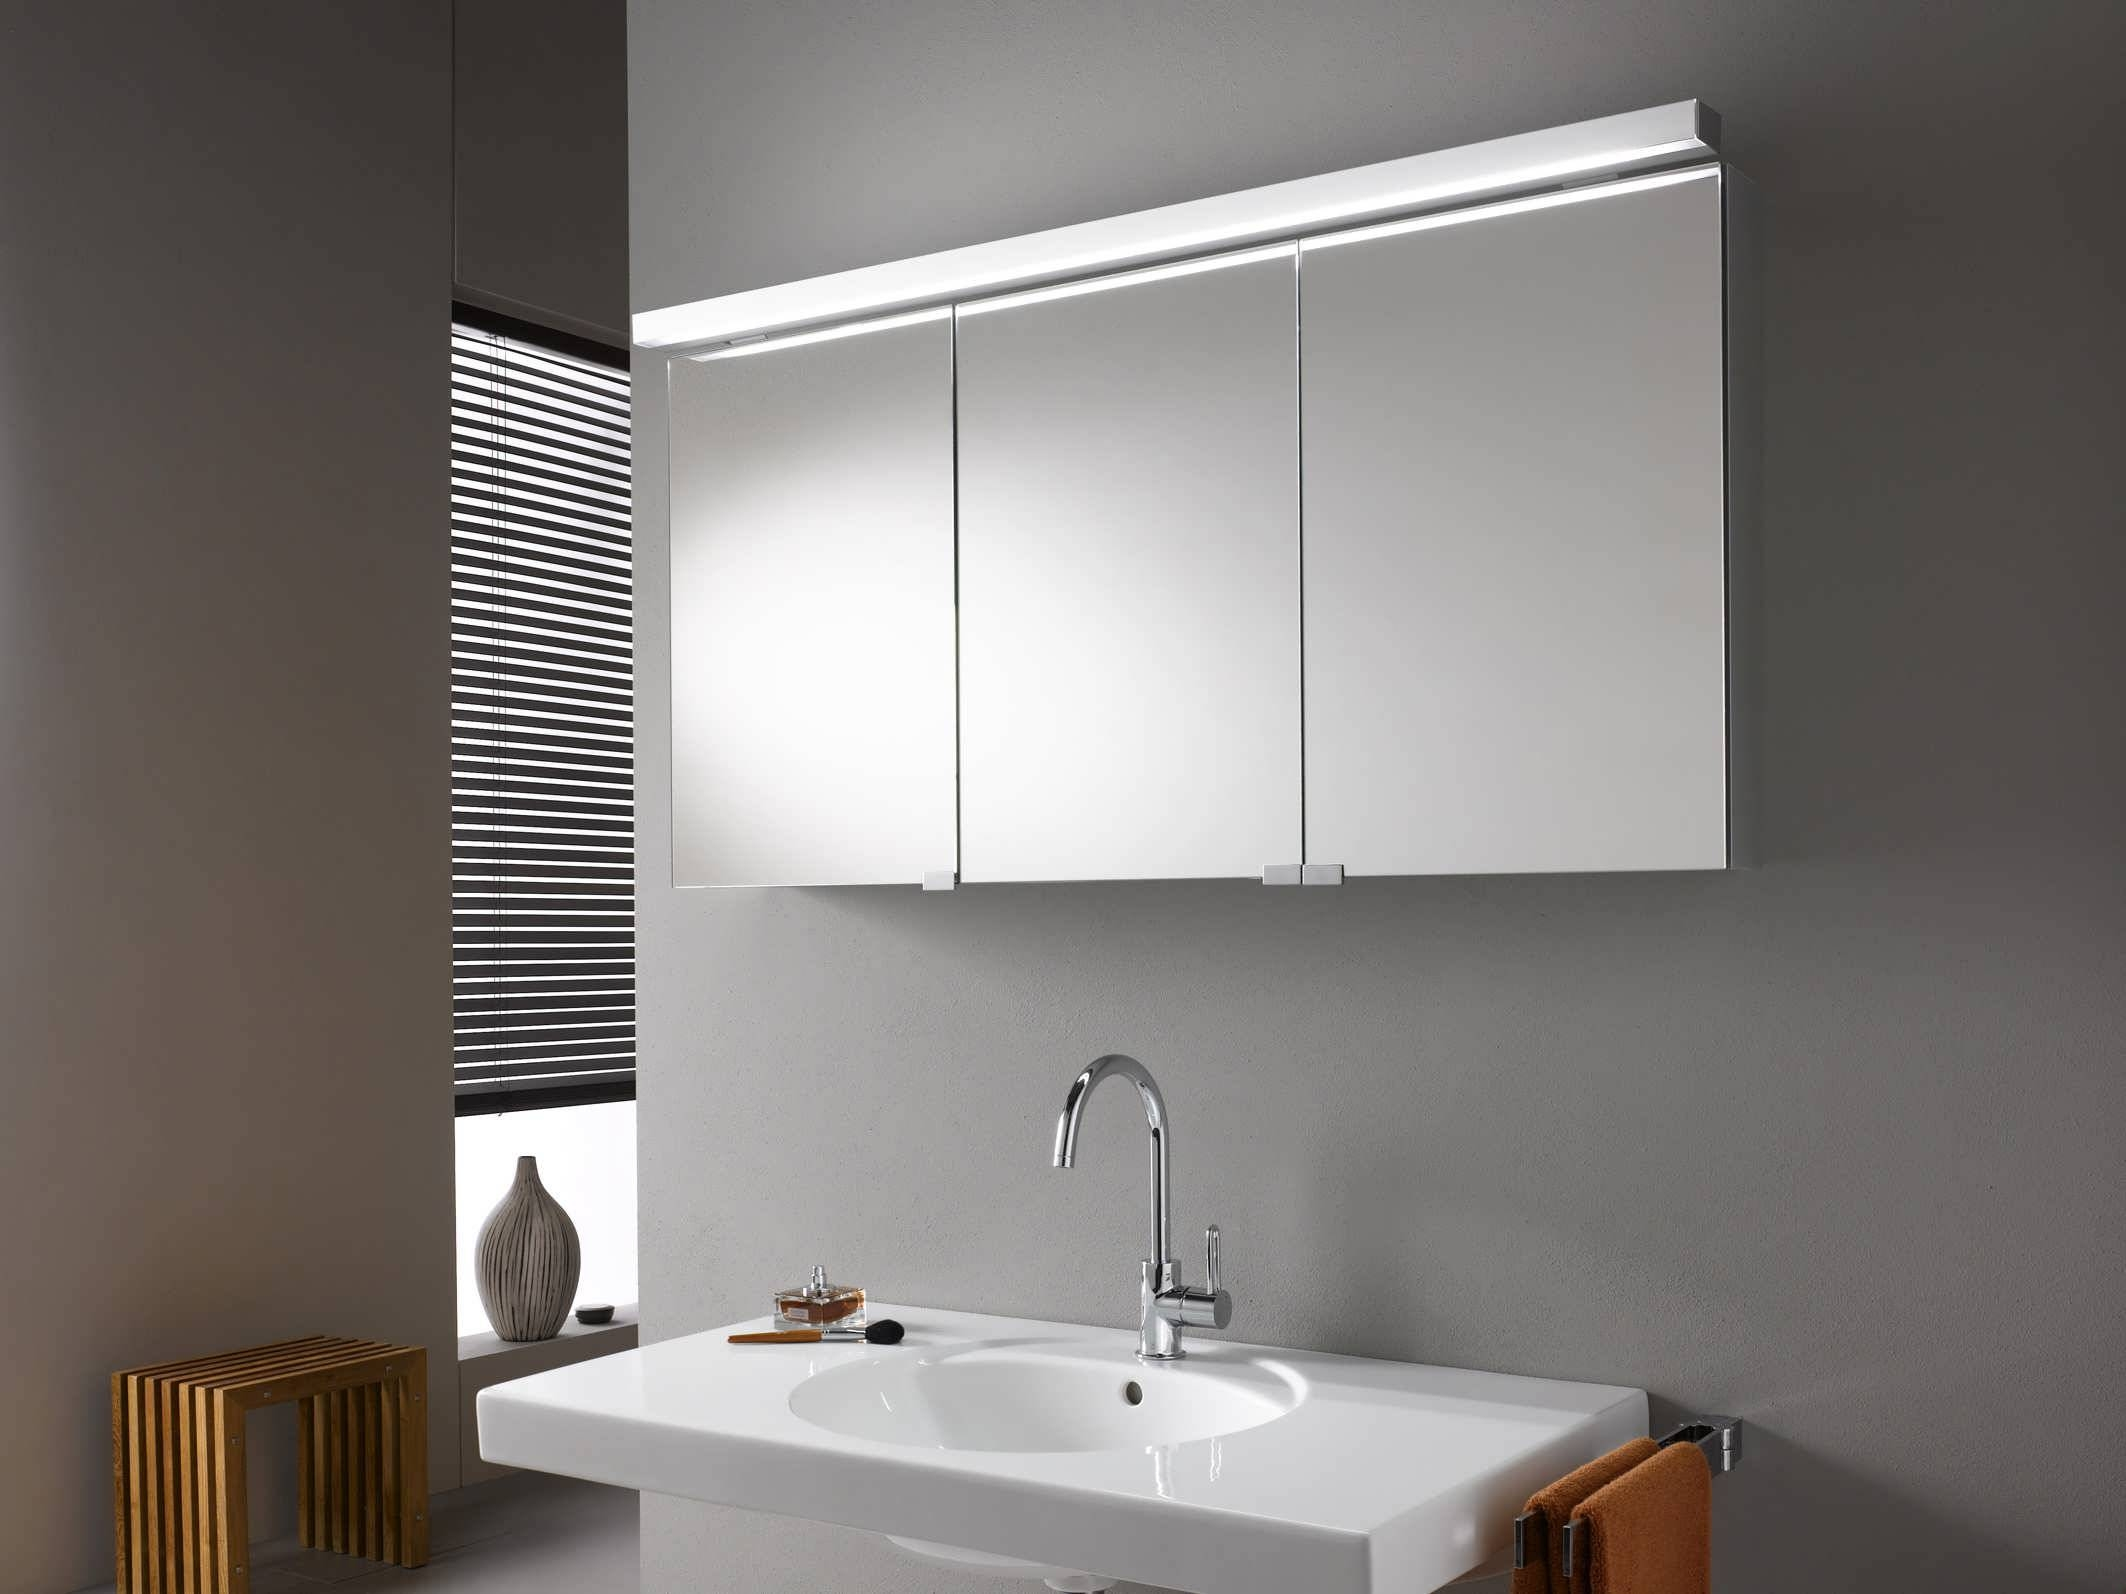 Bathroom Cabinets : Light Up Vanity Mirror Mirror Without Frame inside Wall Mirrors Without Frame (Image 4 of 15)